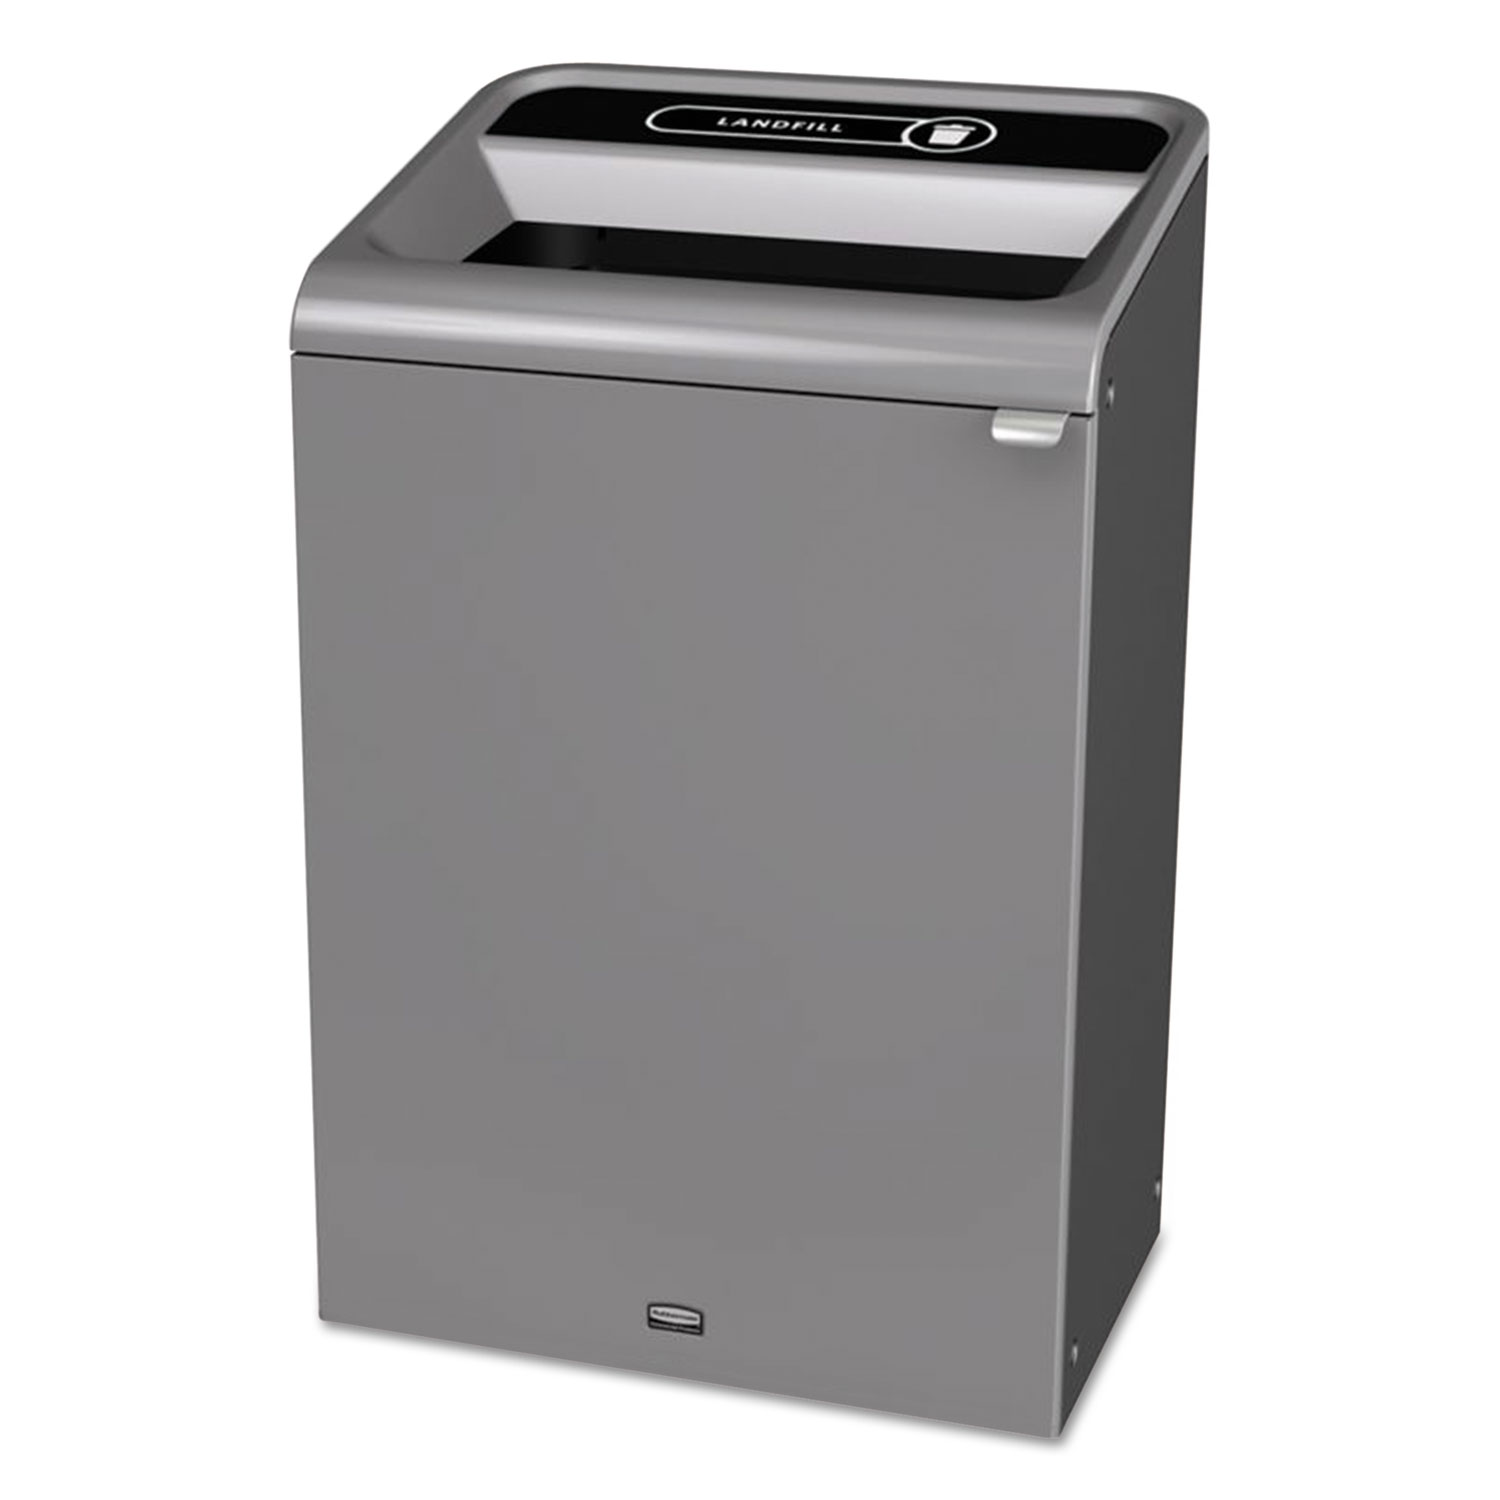 Configure Indoor Recycling Waste Receptacle, 33 gal, Gray, Landfill